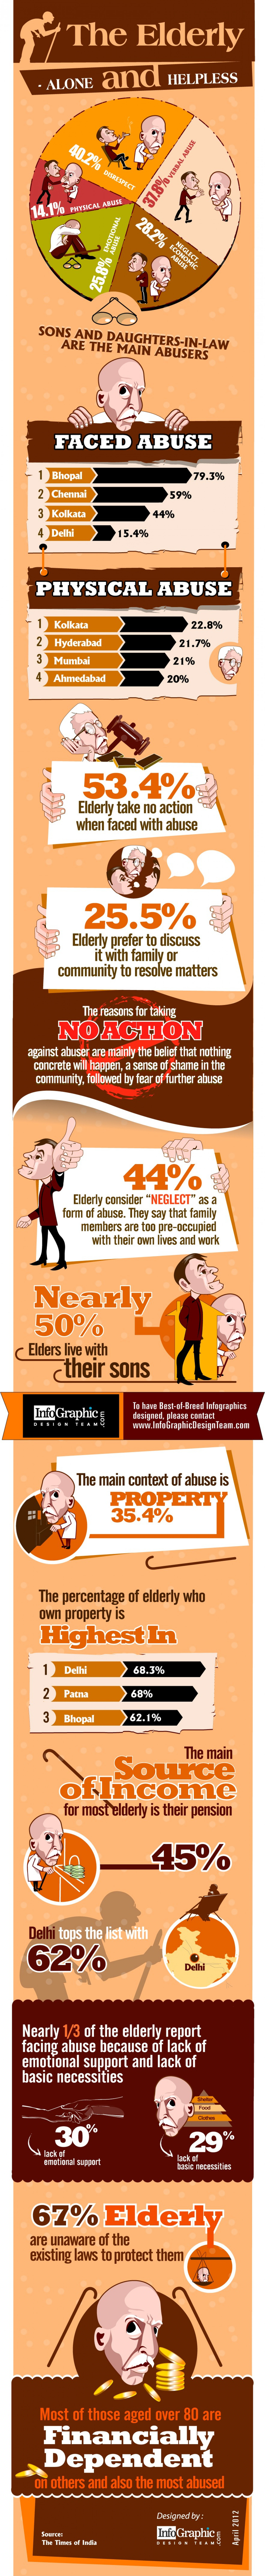 The Old Age Miseries Infographic